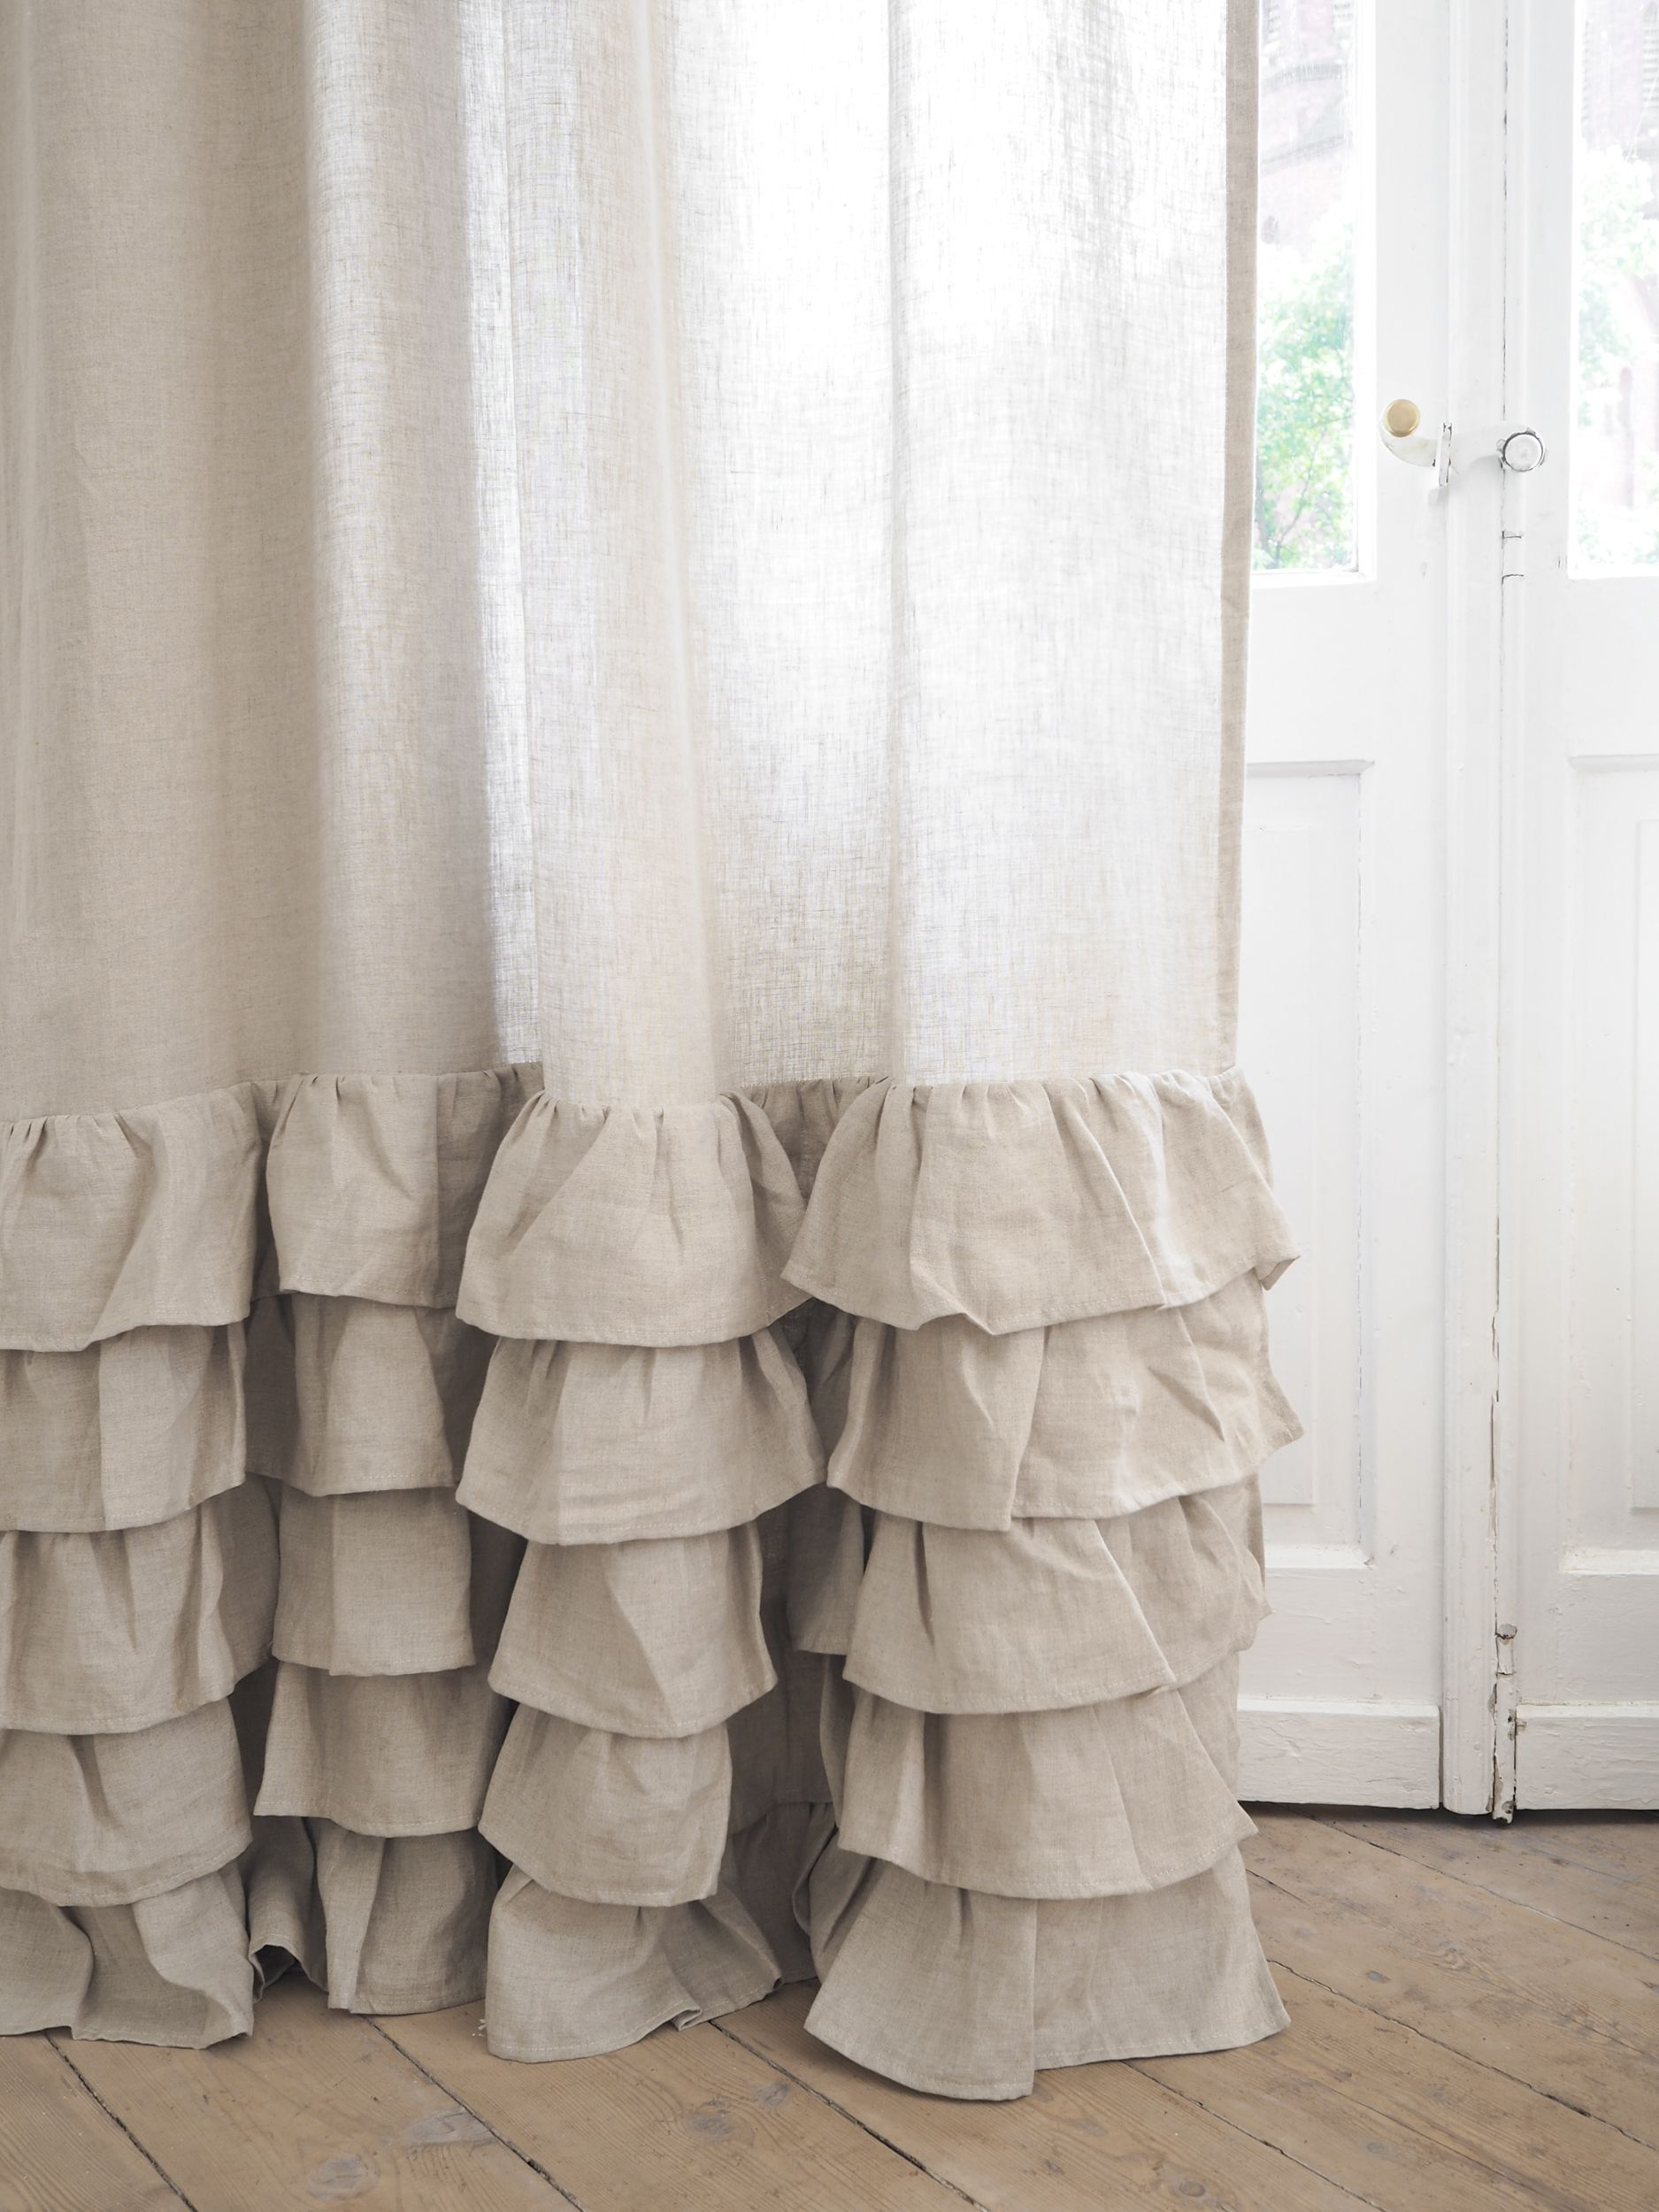 Linen Ruffled Curtain Panel Curtain Panel With Ruffles 100 Linen Natural Linen Curtain Ruffle Curtains Linen Curtains Curtains